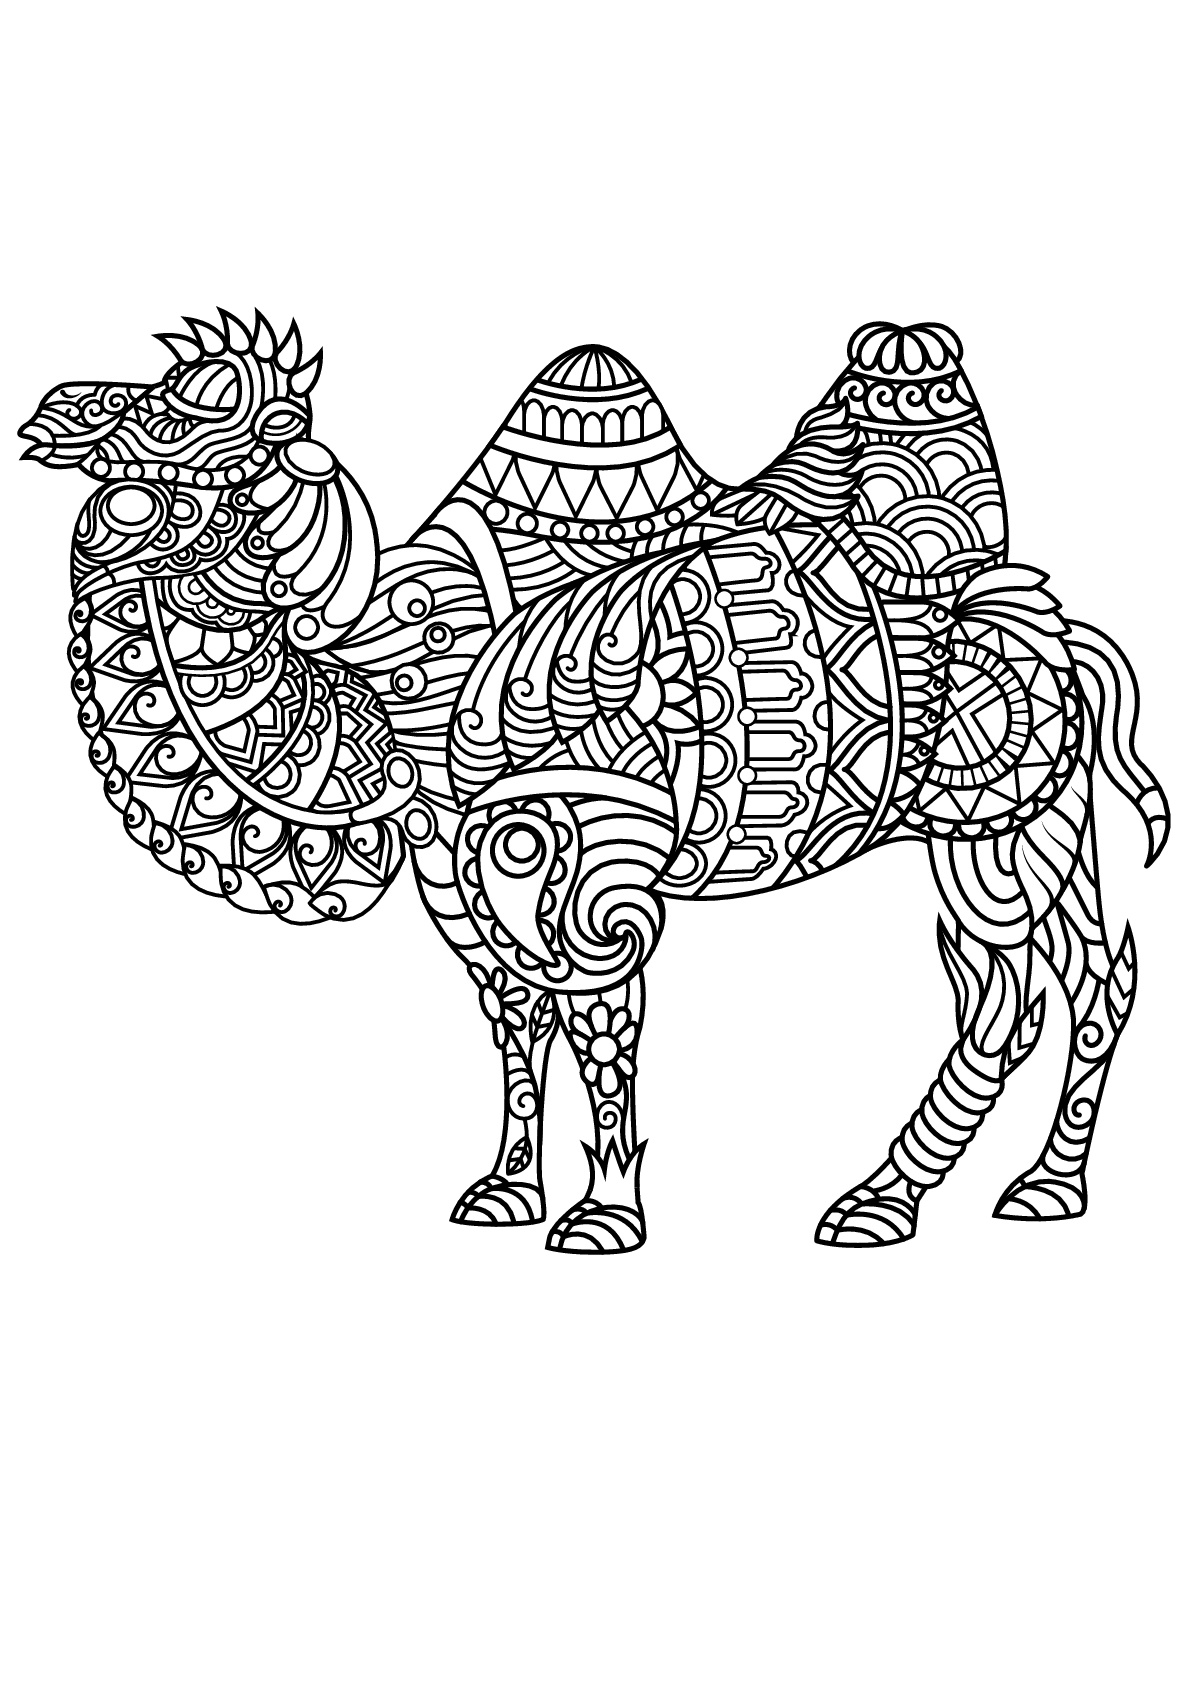 Free book camel - Camels & Dromedaries Adult Coloring Pages